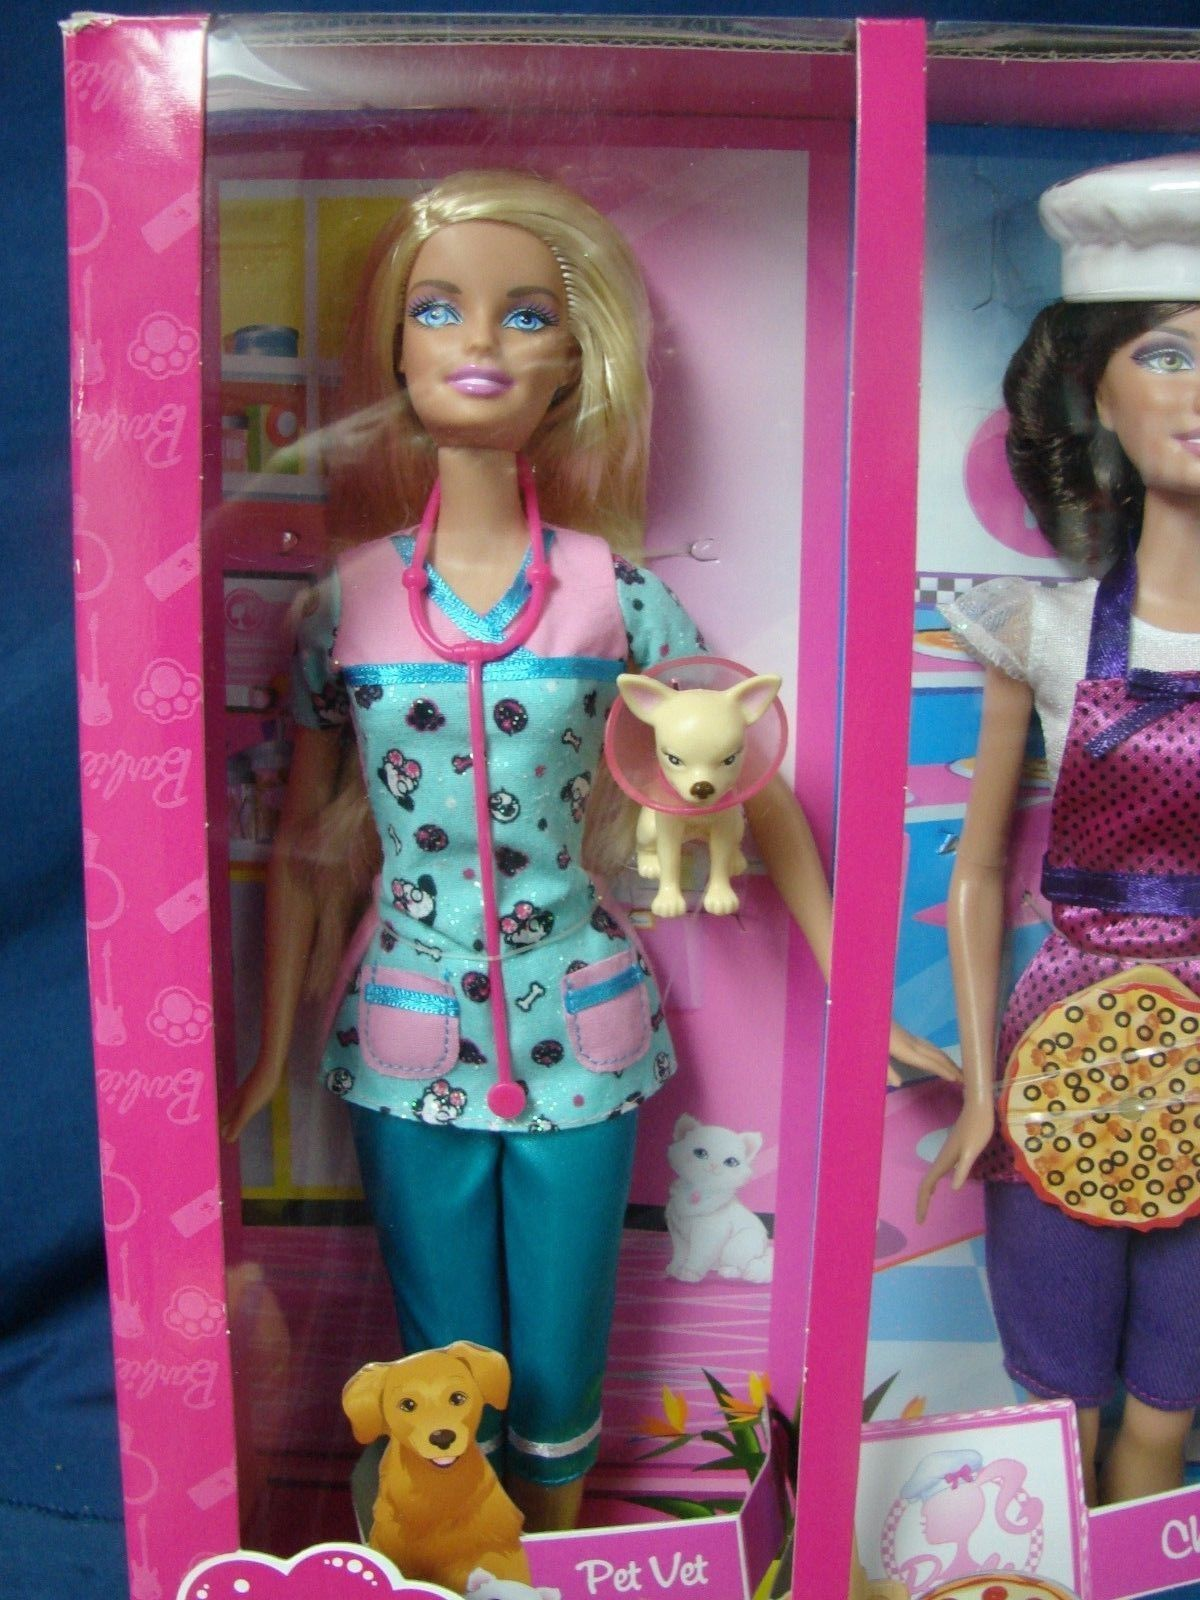 2010 Barbie I Can Be Career 4 Doll Playset Pet Vet Chihuahua